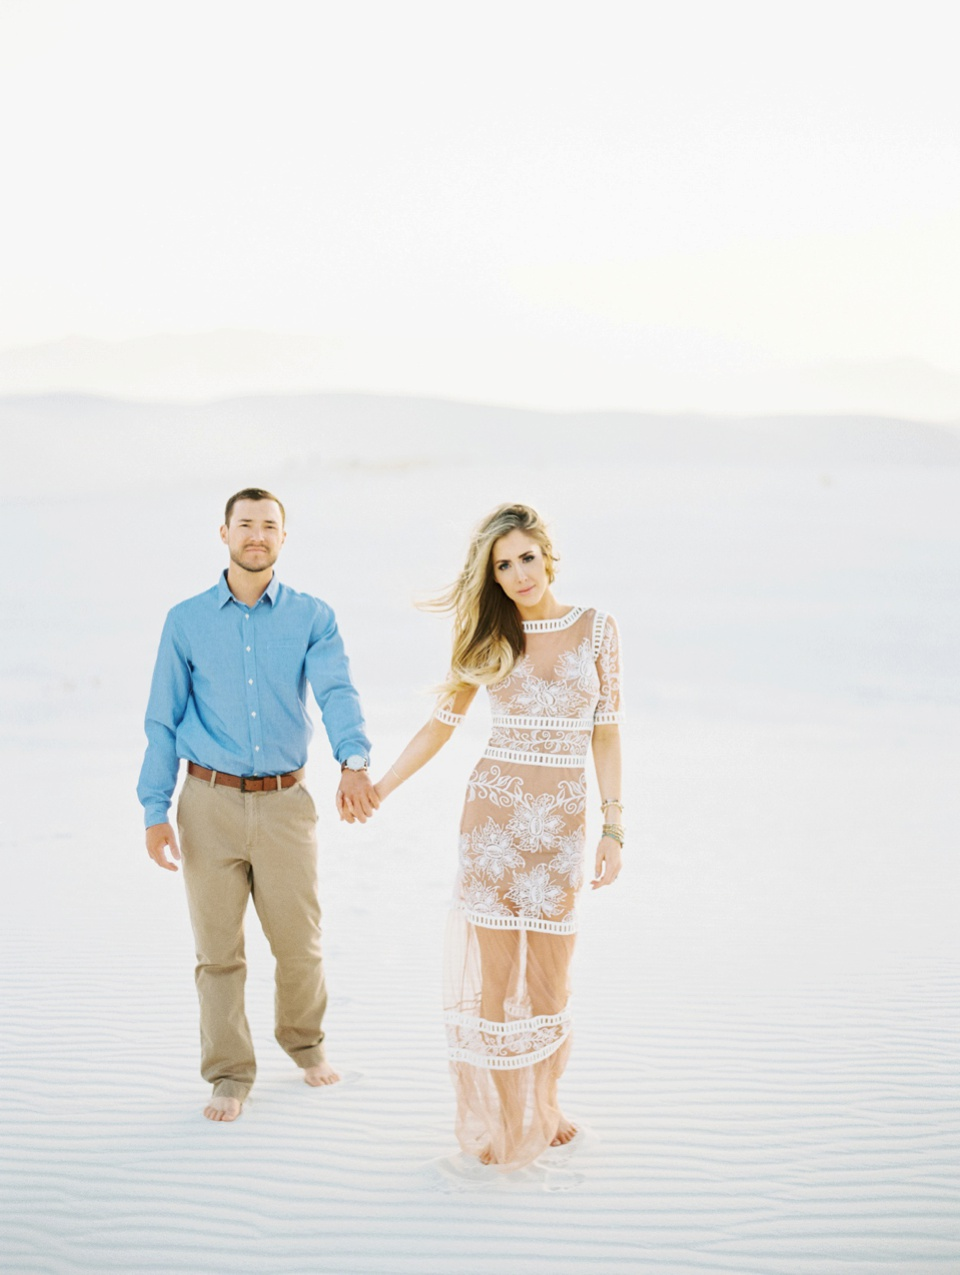 Becca Lea Photography, New Mexico Wedding Photographer, White Sands engagement session, White Sands National Monument, For Love and Lemons dress